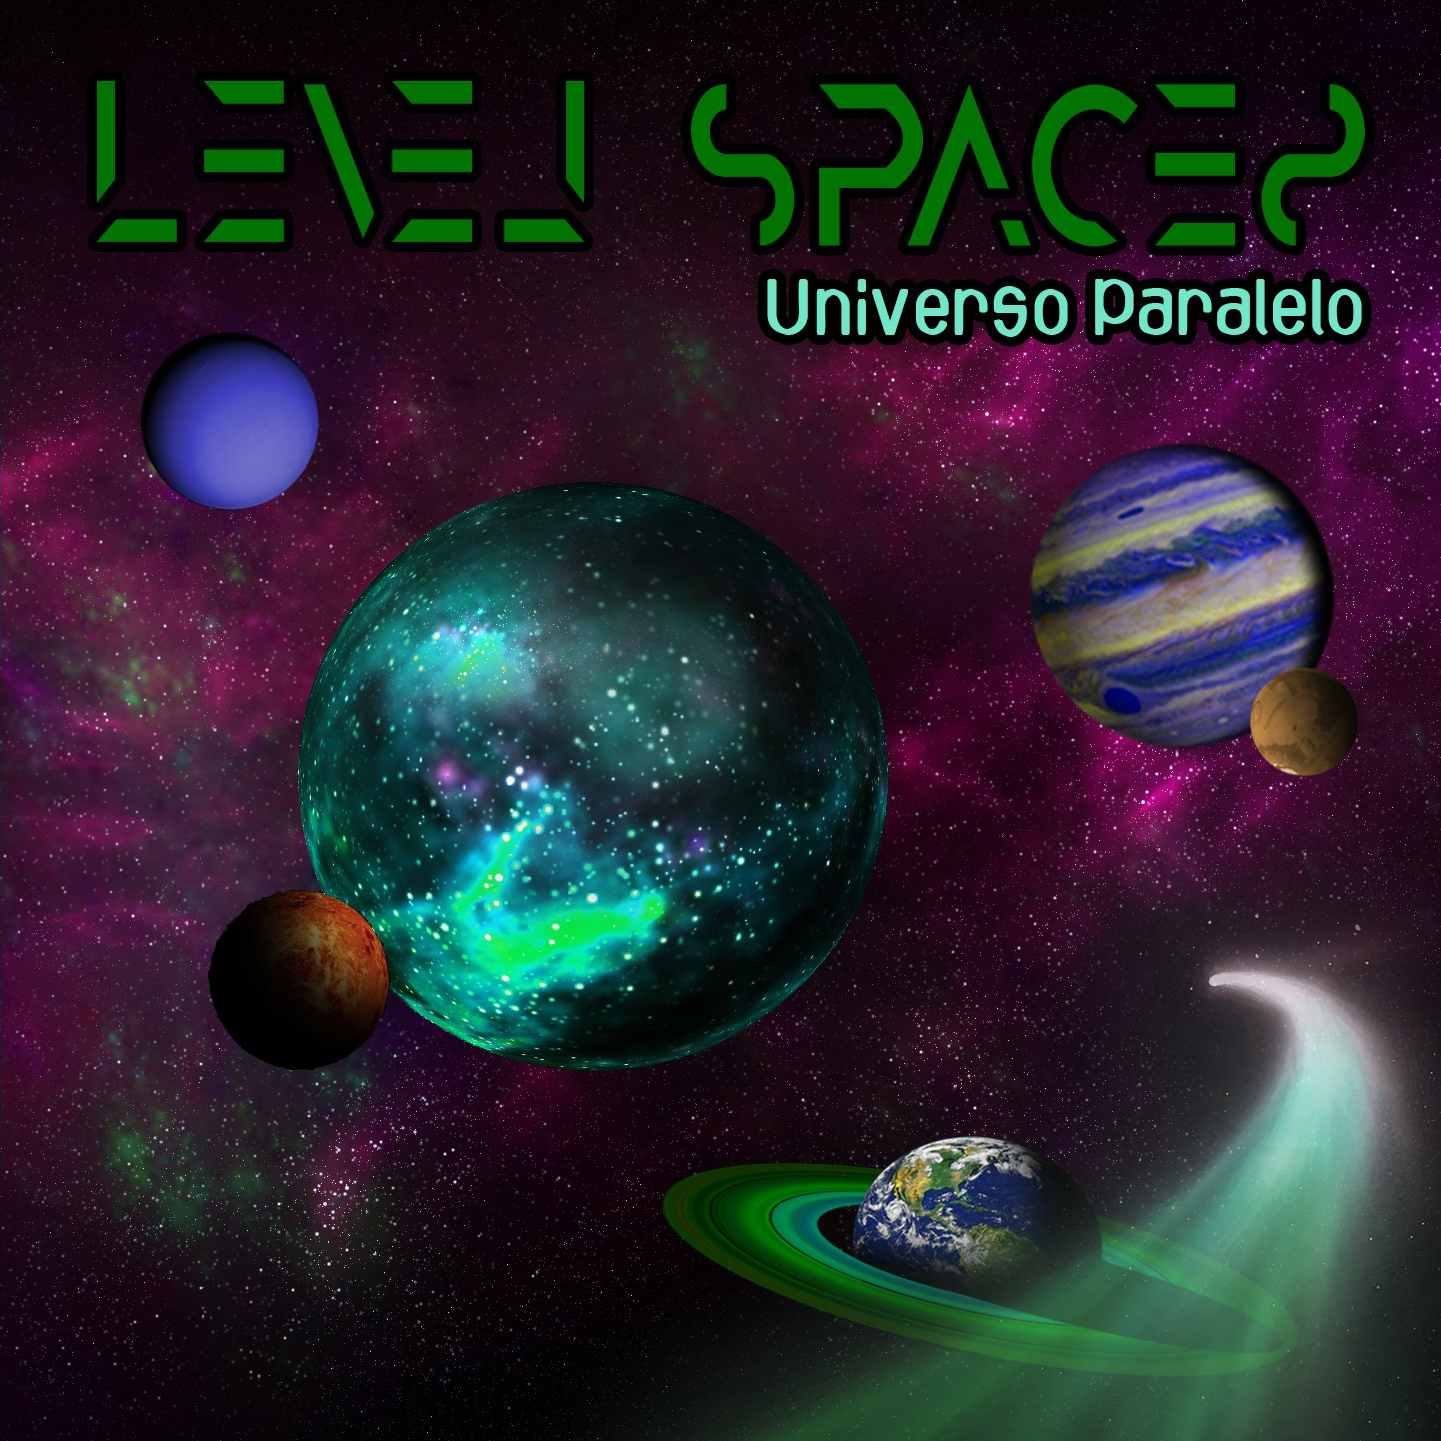 Free download Universo Paralelo